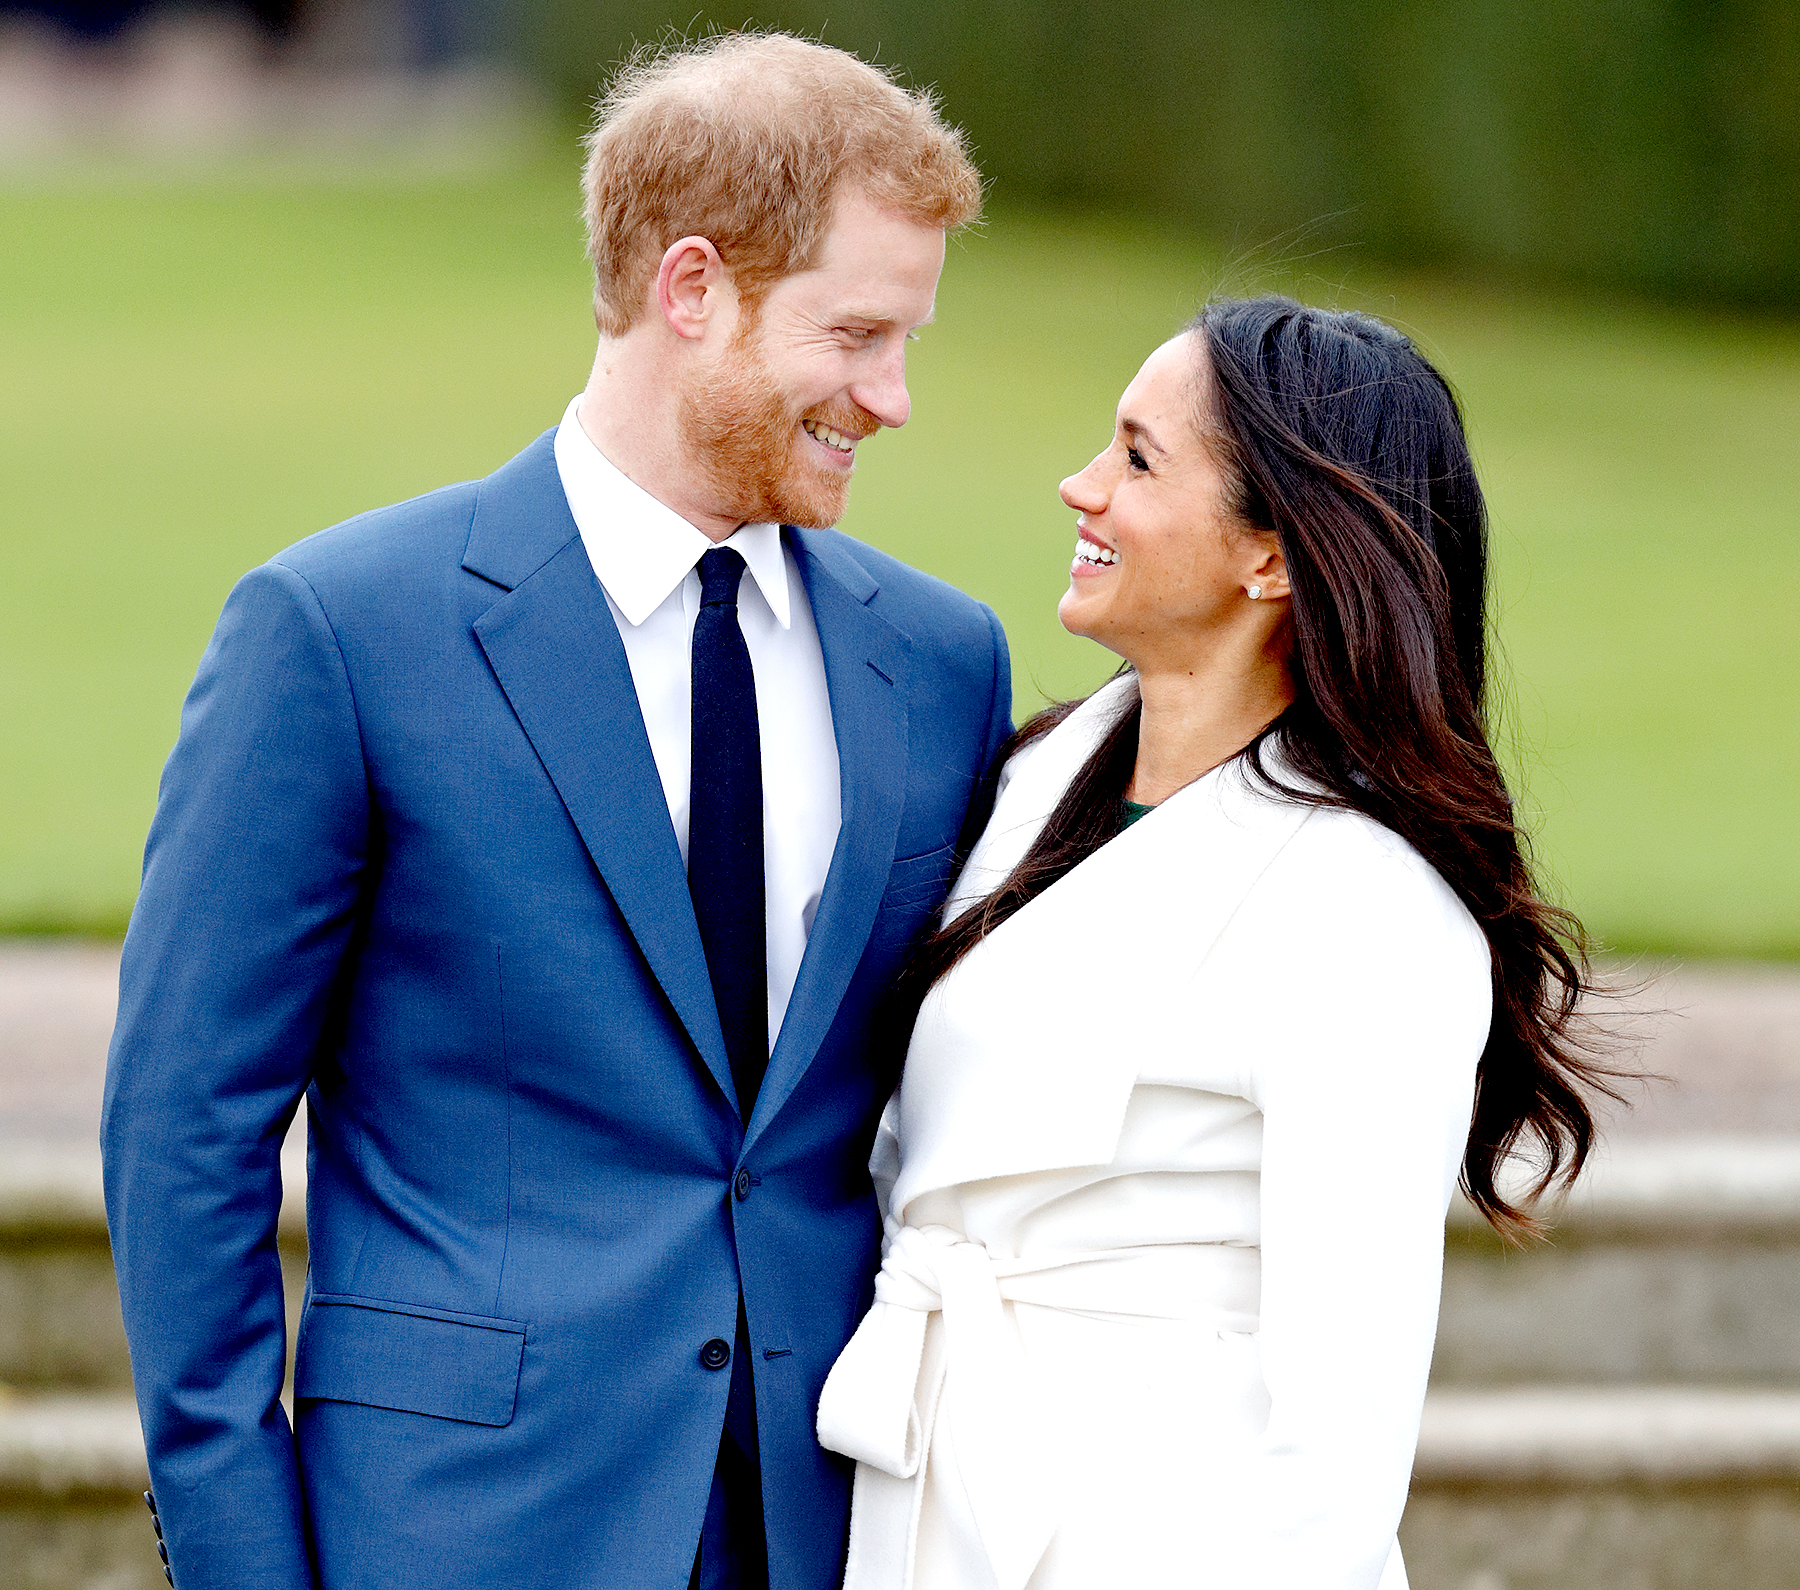 Meghan Markle Picks Stylist Friend as Wedding Dress Designer